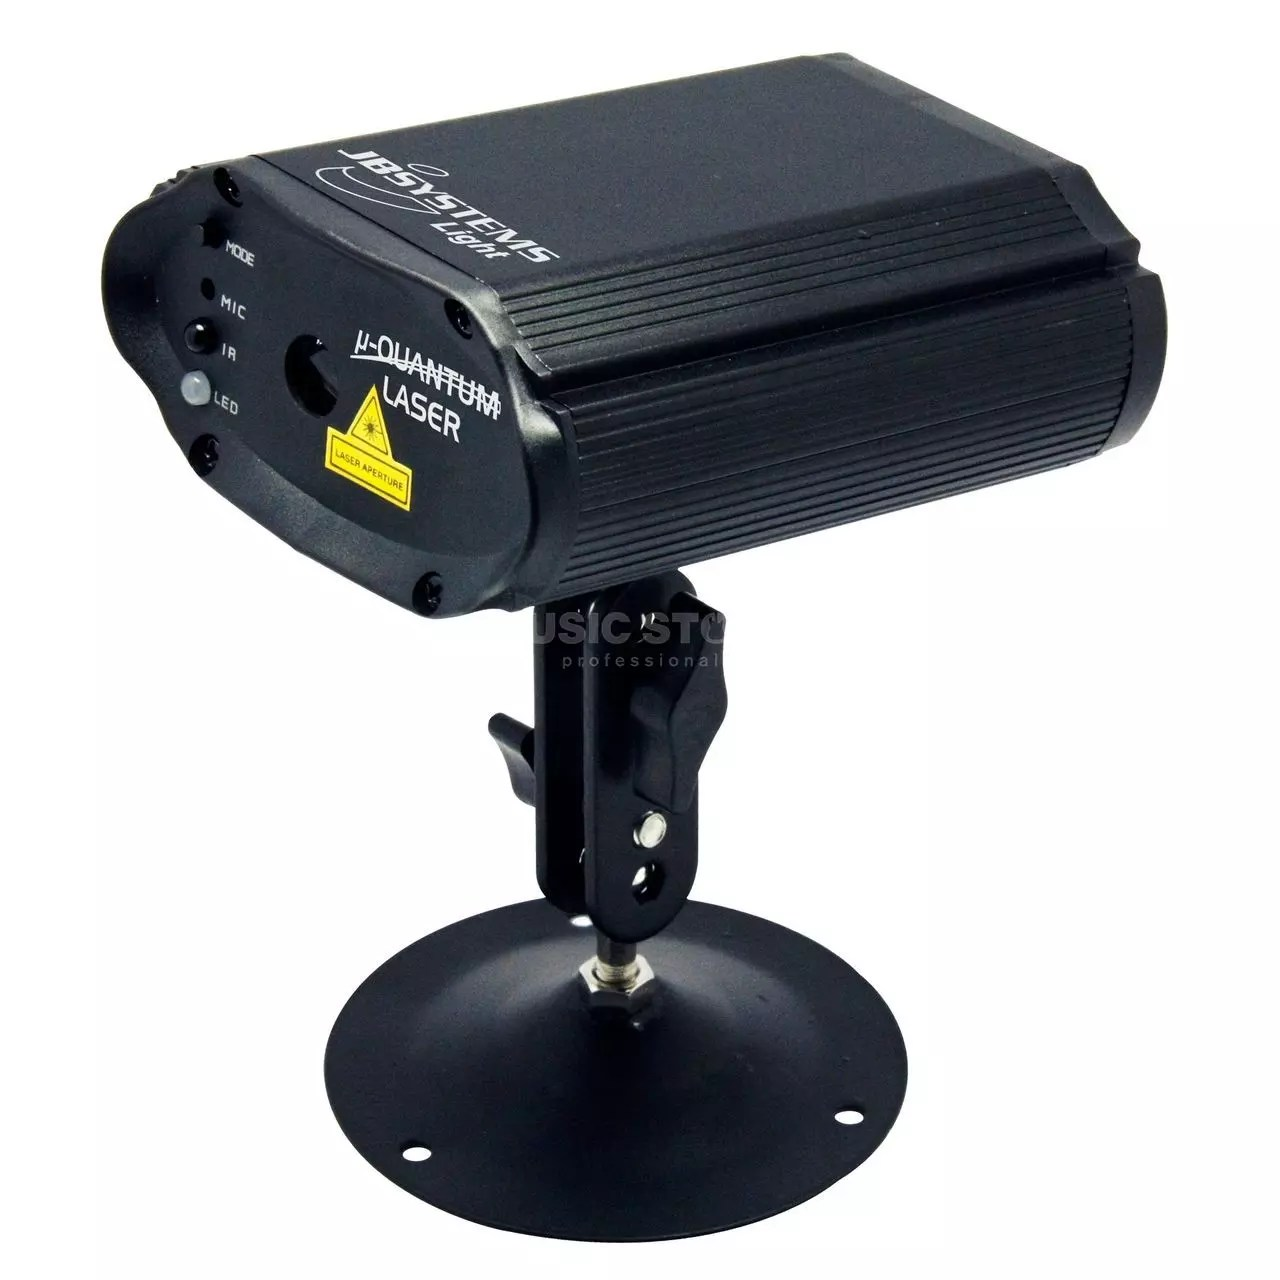 Jb Lighting Micro 150 Jb Systems Micro Quantum Laser Rb